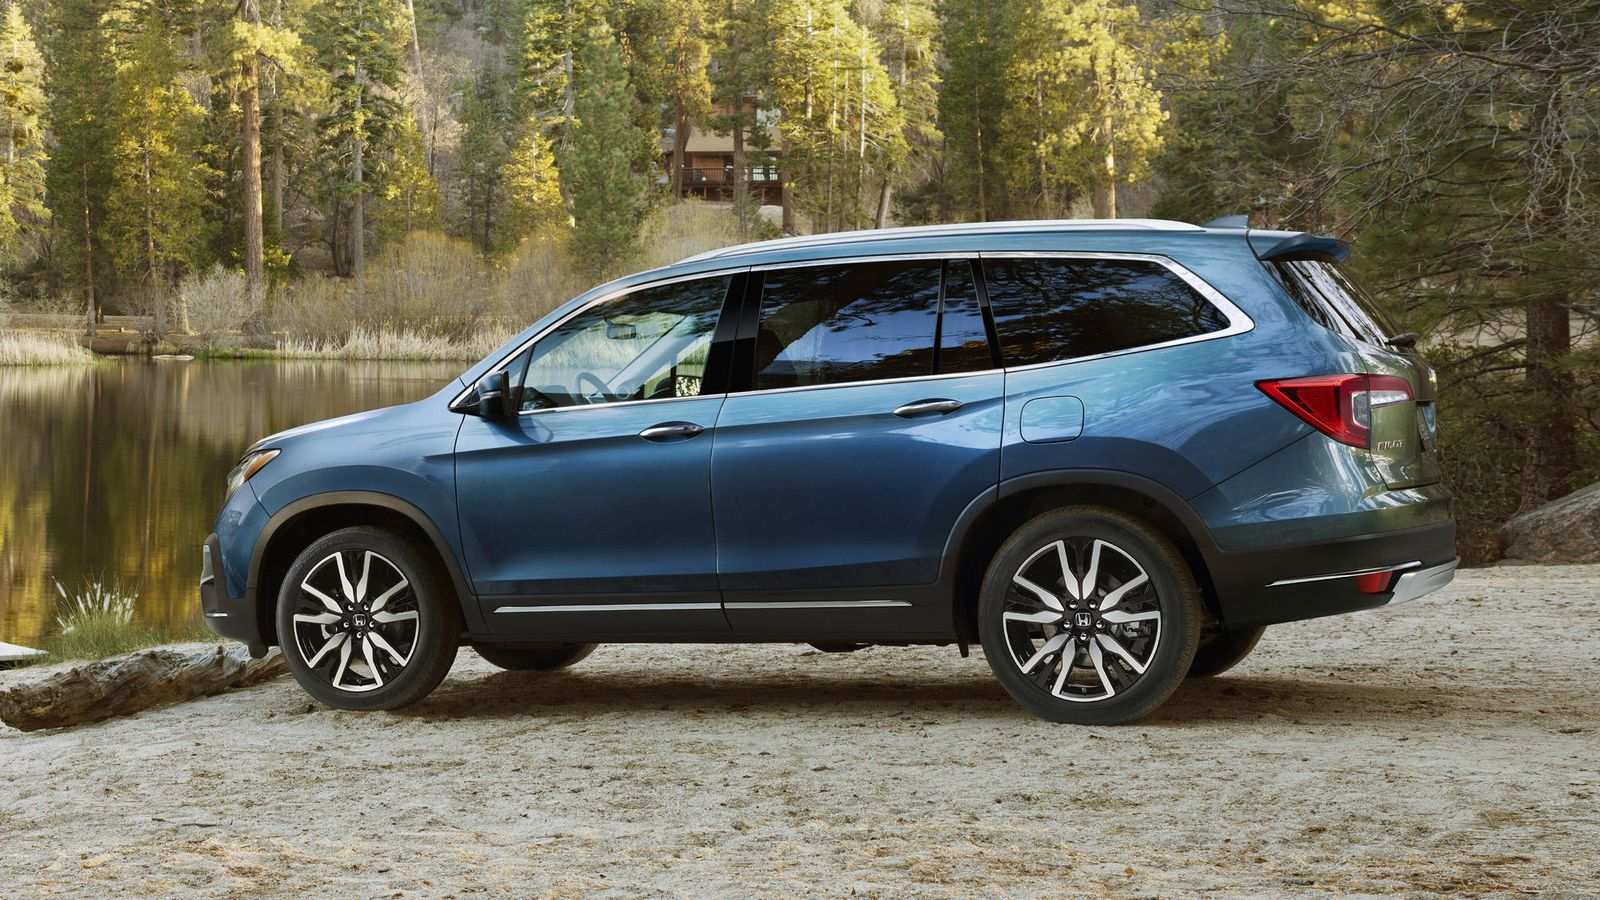 23 All New When Does The 2020 Honda Pilot Come Out Performance